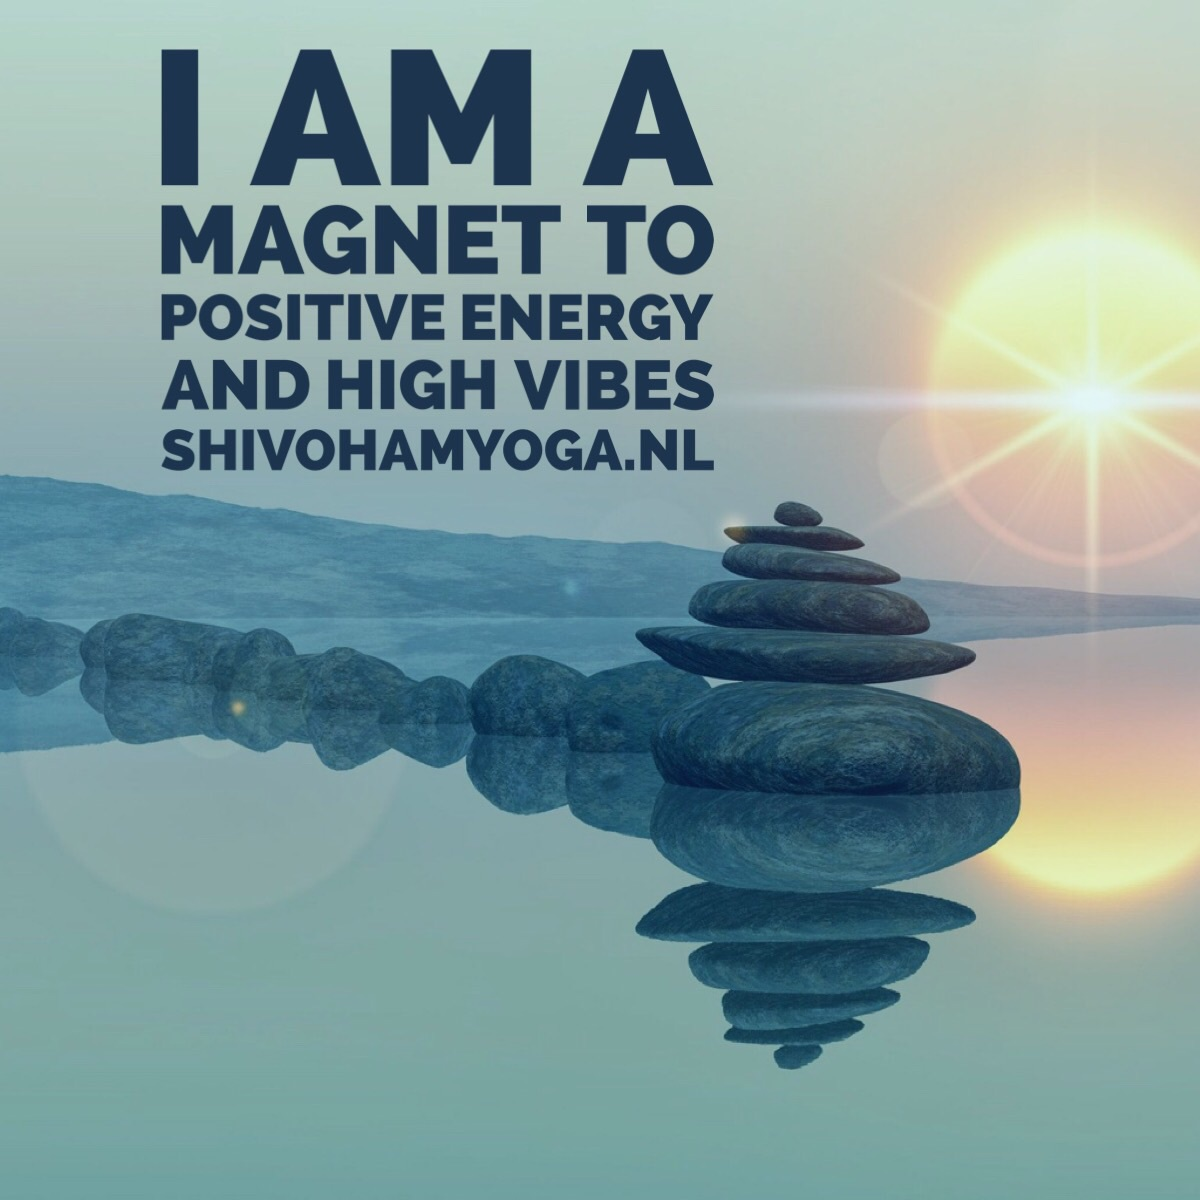 Quotes About Positive Energy I Am A Magnet To Positive Energy And High Vibes ♡ Httpwww